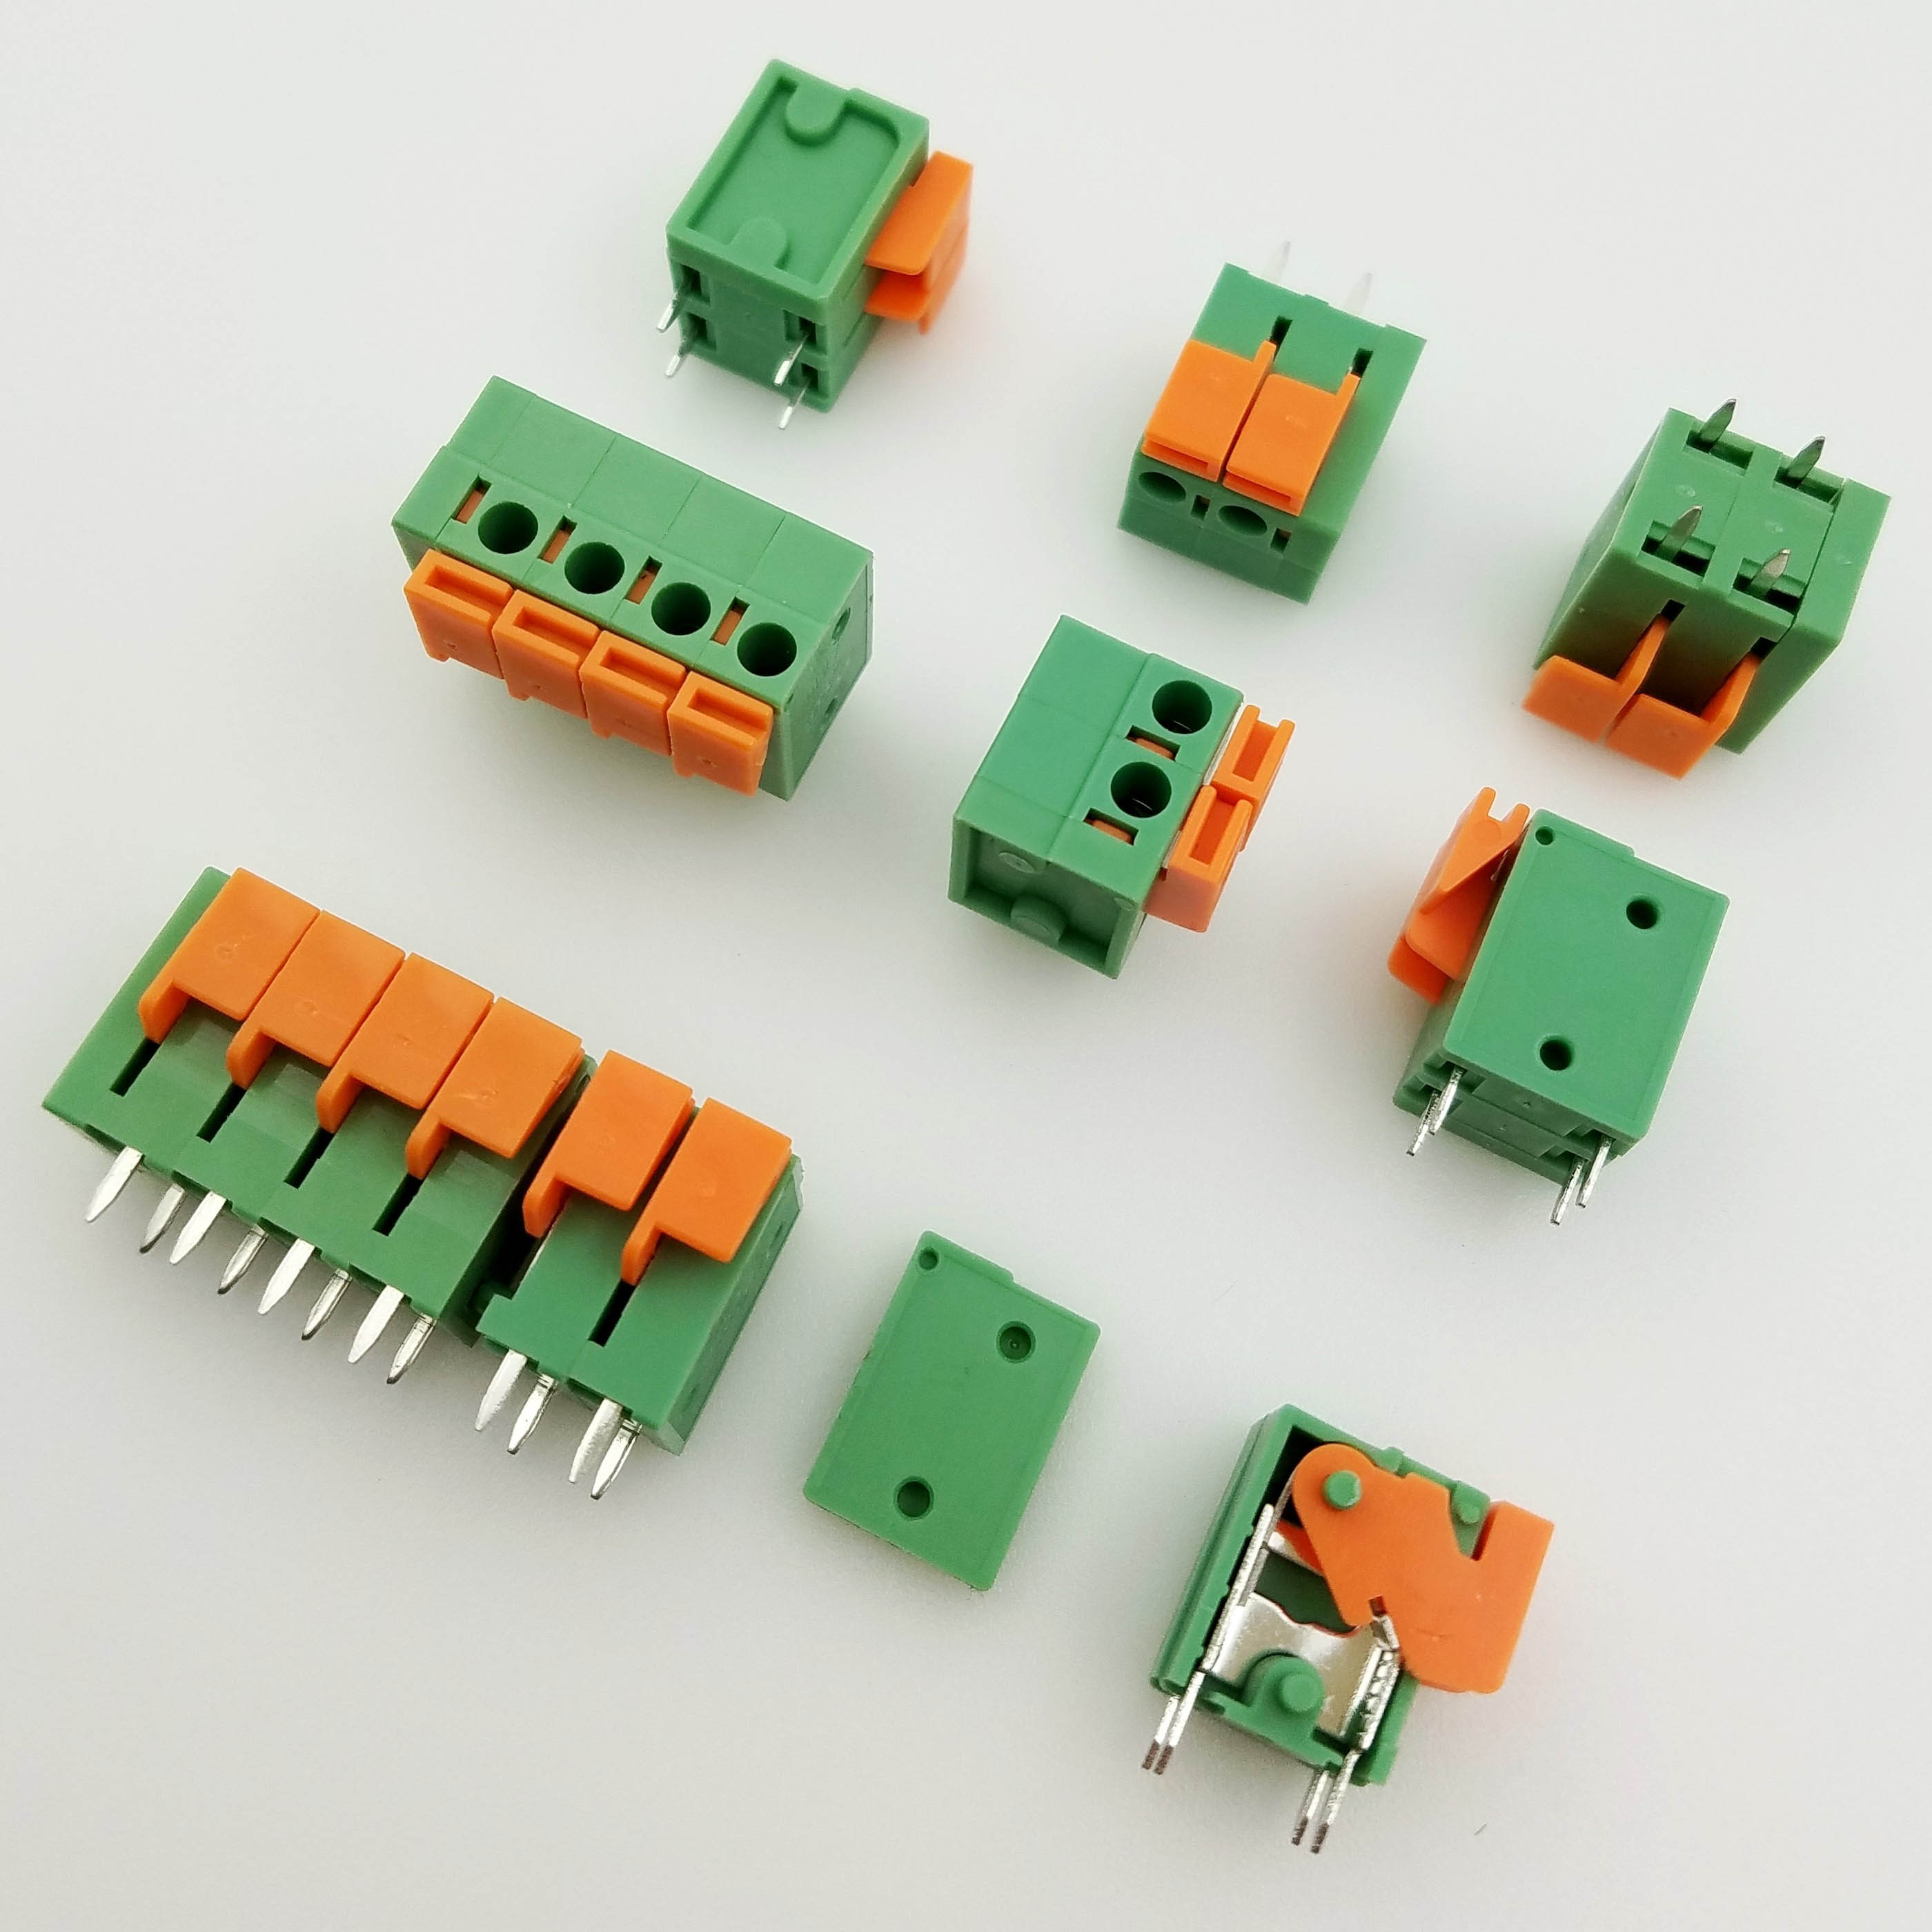 100pcs KF142V 5.08mm PCB Spring Terminal Block KF128-5.08 2P 3P 4P 5P 6P 7p 8p 9p 10p Terminals Connector PCB Mounted Screw baldinini de nuit